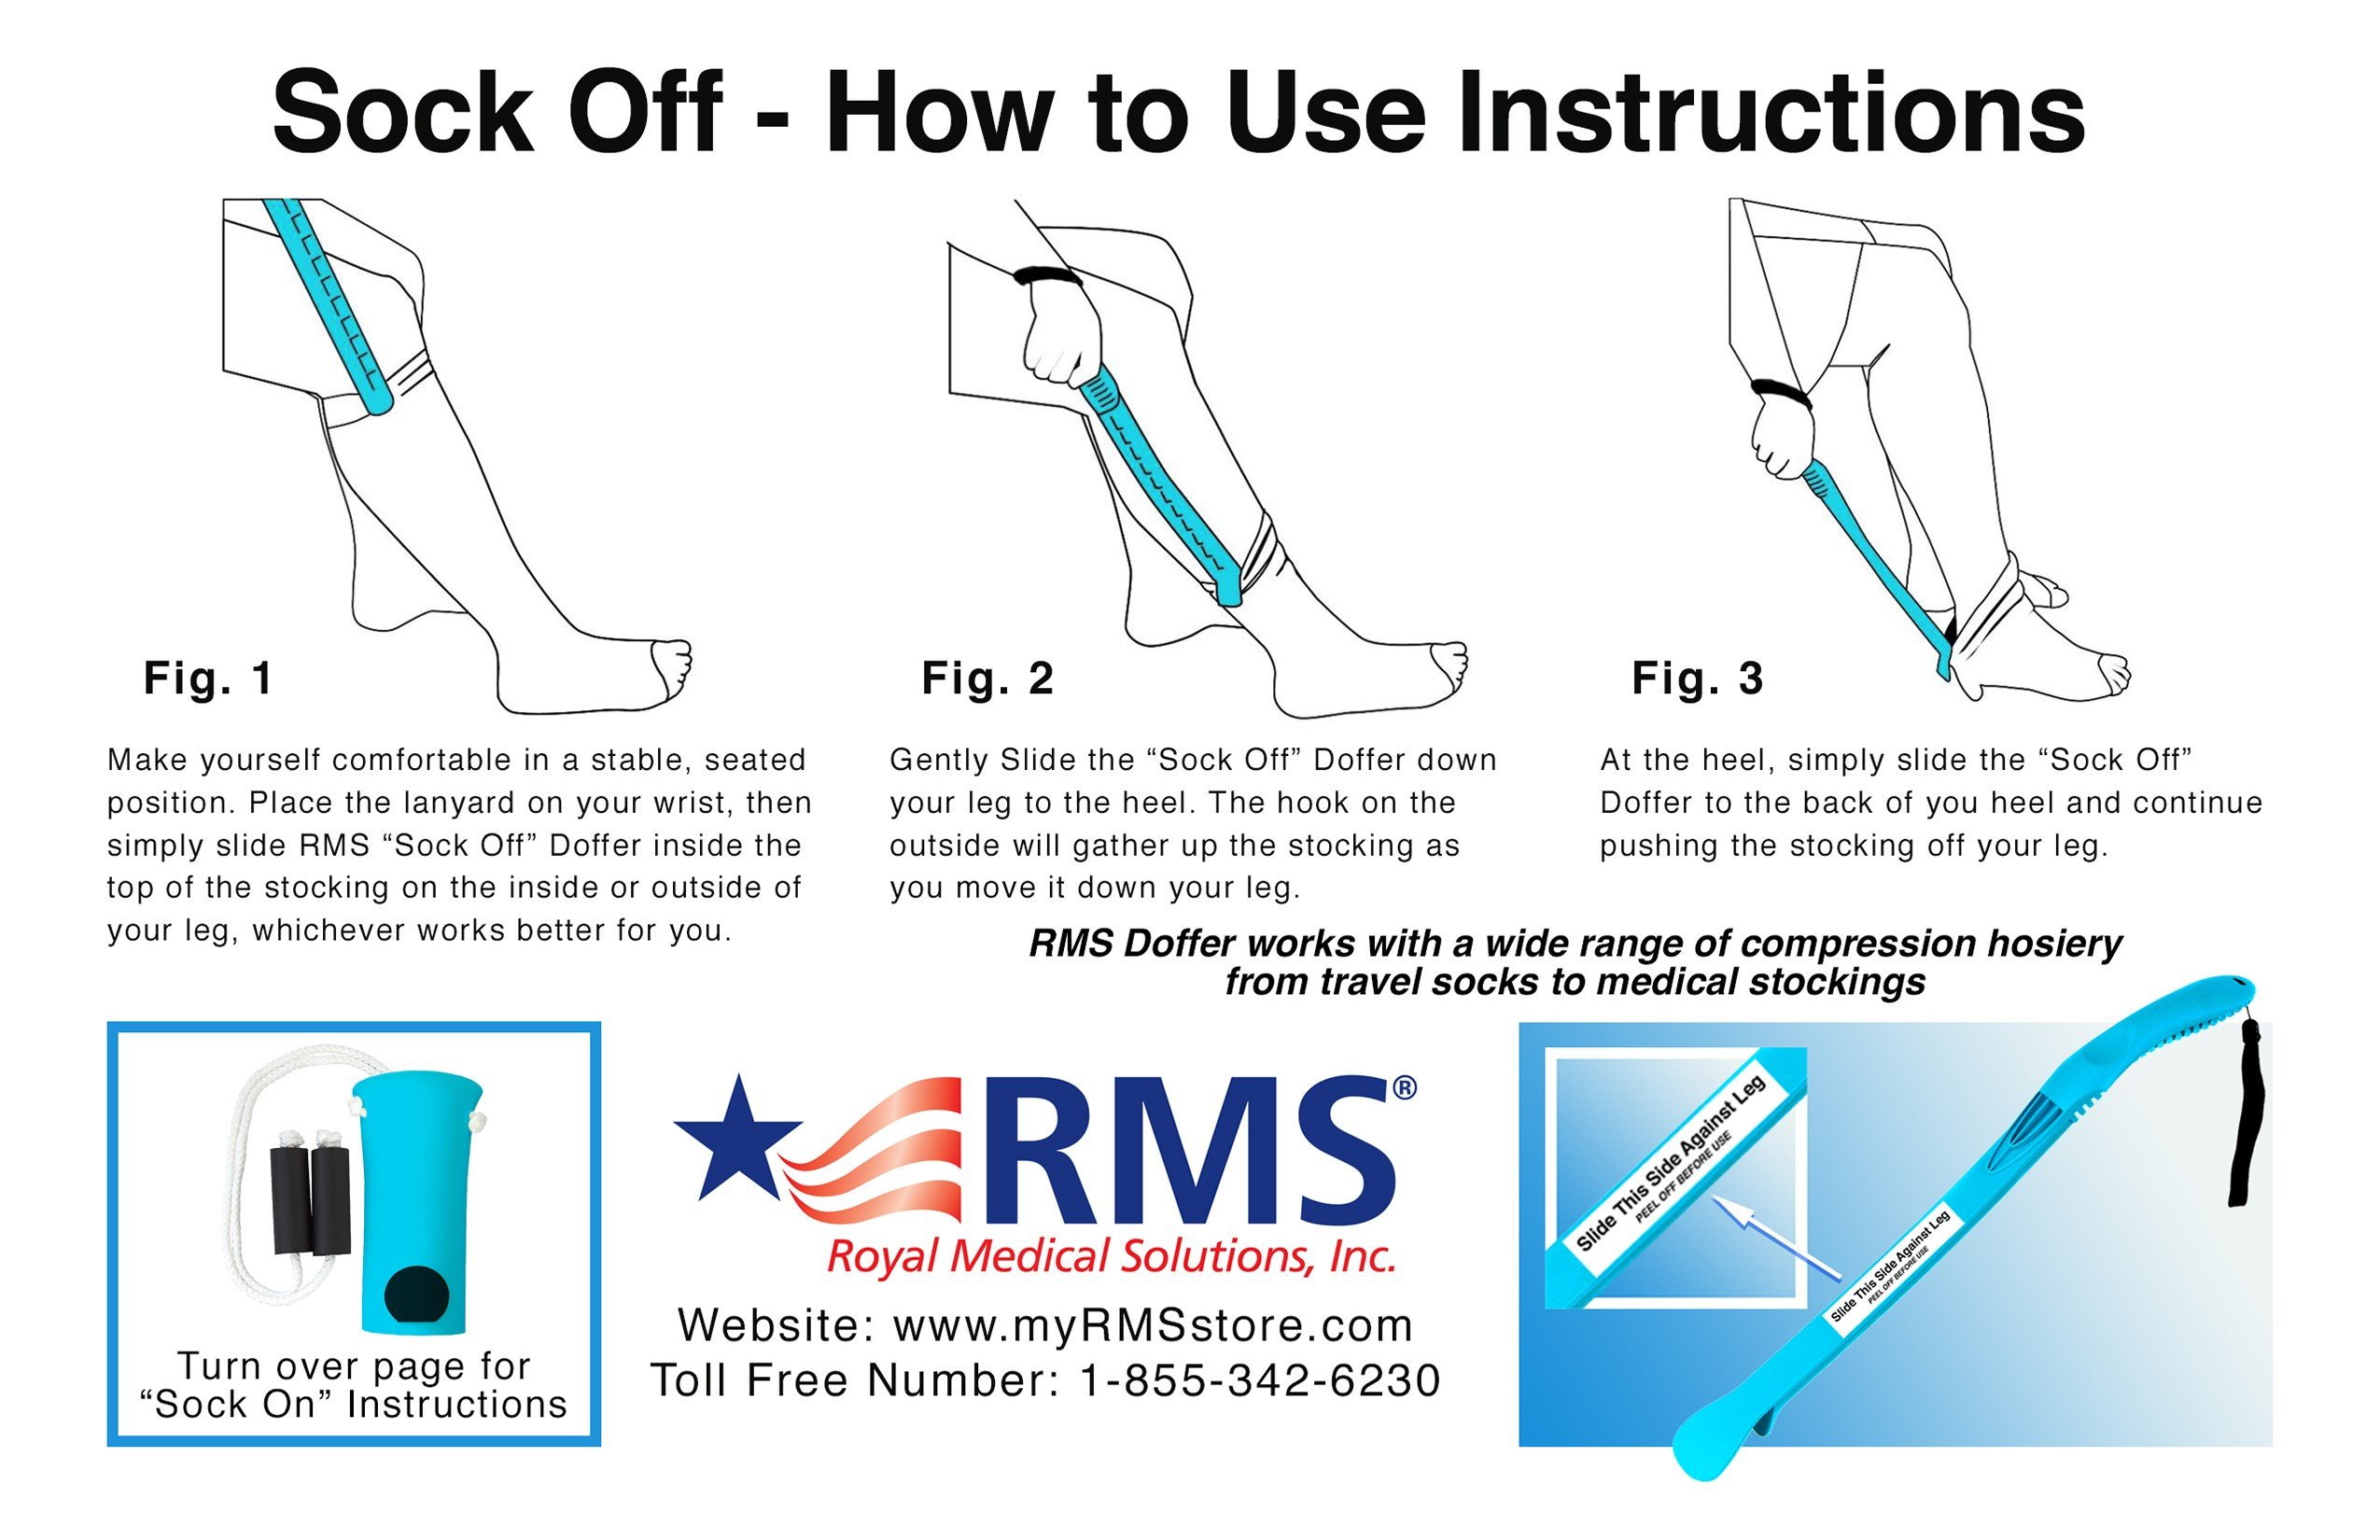 RMS Sock Aid Kit - Sock On Sock Off Device for Putting On and Removing Socks or Compression Stocking for Men and Women with Limited Mobility (Blue) by RMS Royal Medical Solutions, Inc.